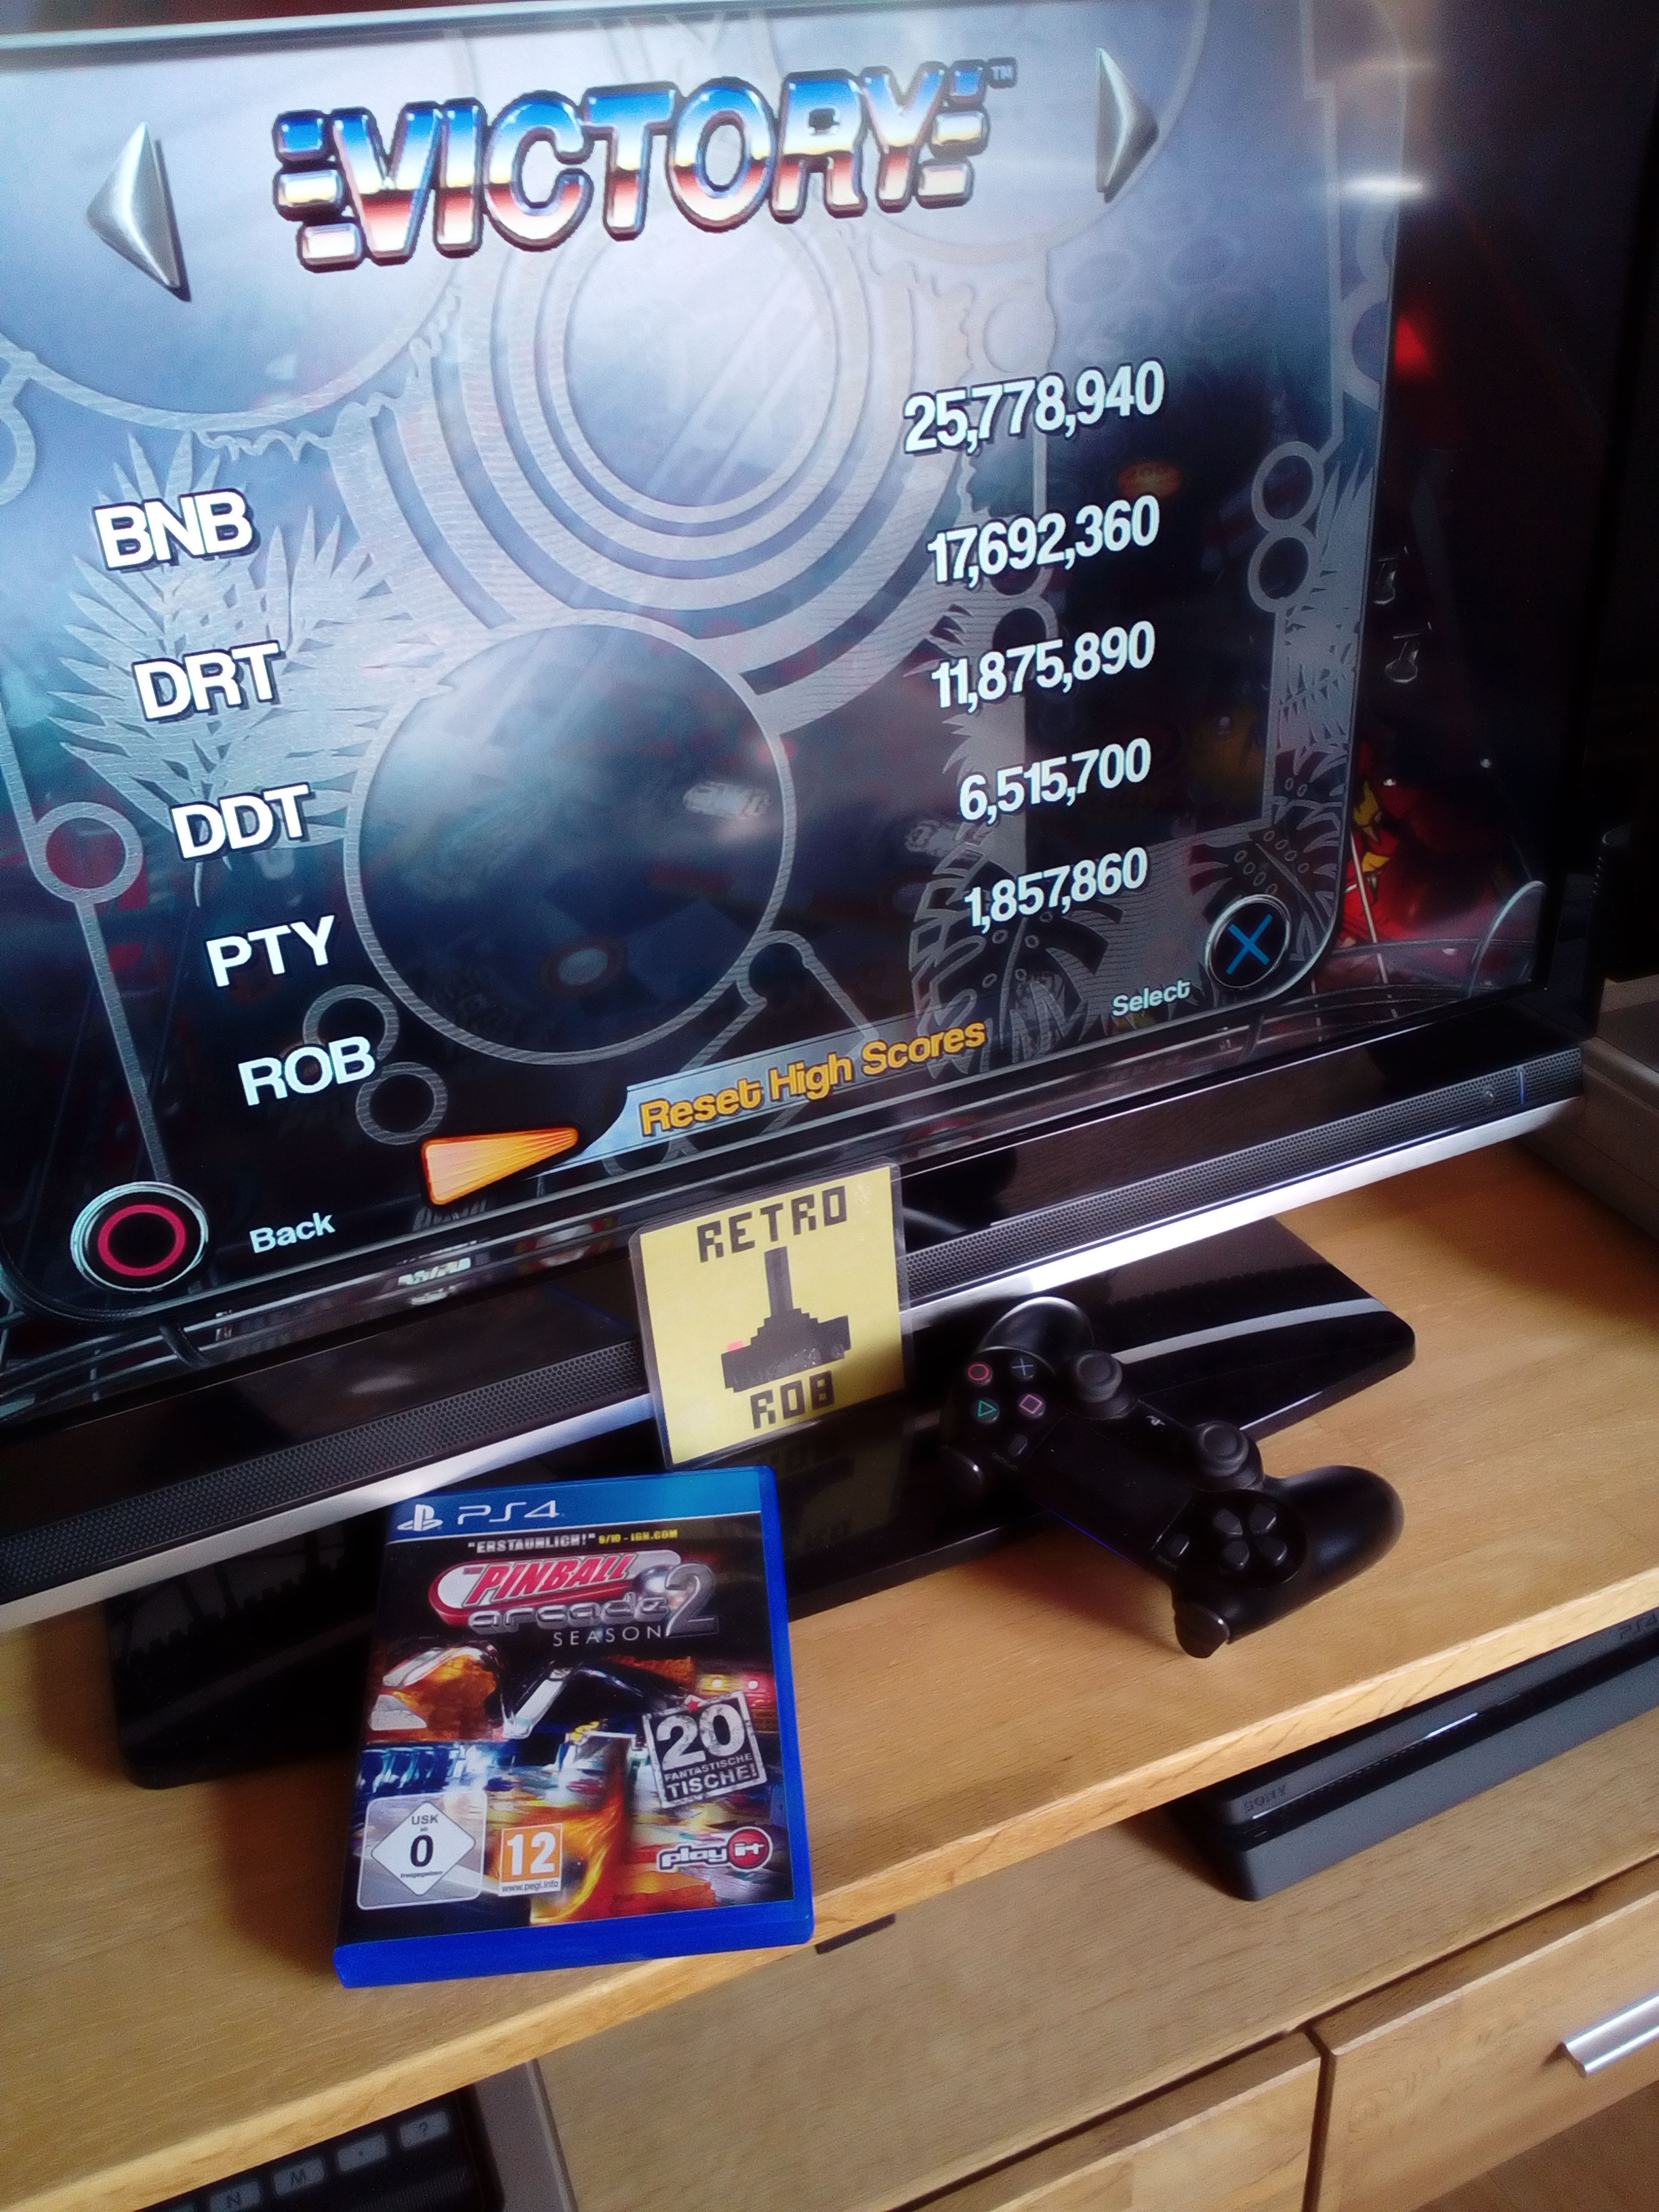 RetroRob: Pinball Arcade: Victory (Playstation 4) 1,857,860 points on 2020-05-11 08:27:15